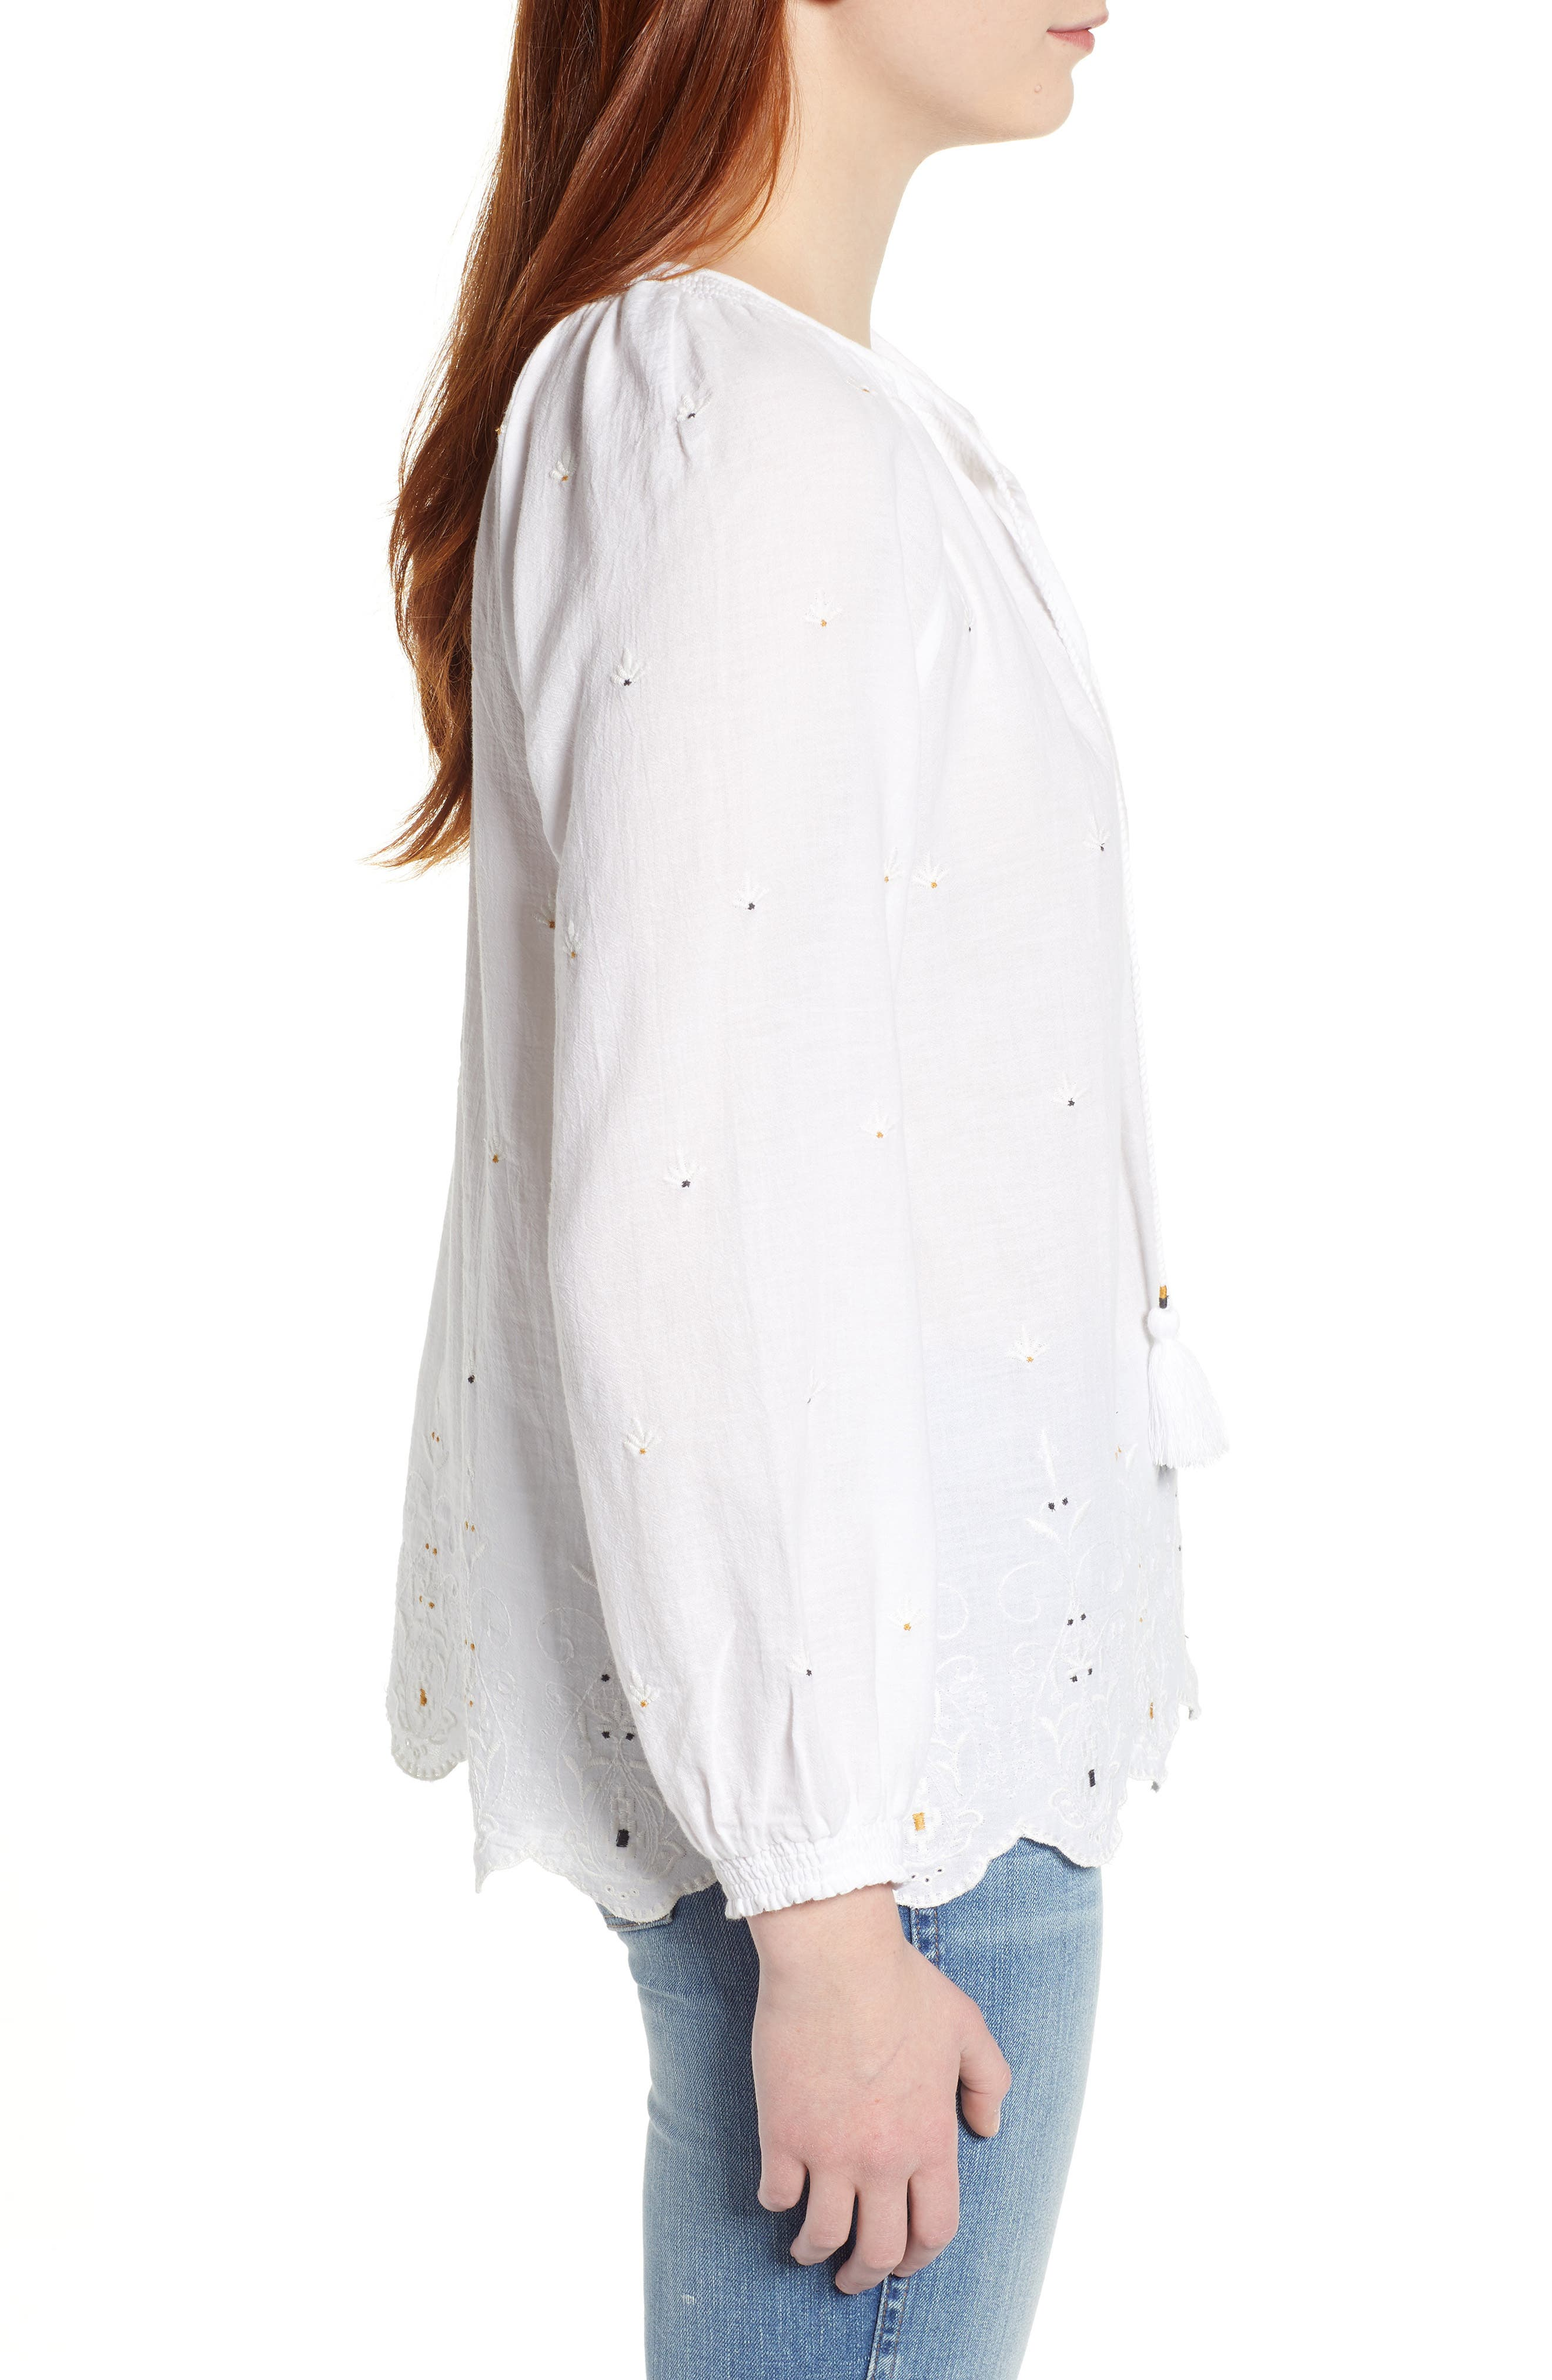 LUCKY BRAND, Eyelet Peasant Top, Alternate thumbnail 3, color, LUCKY WHITE